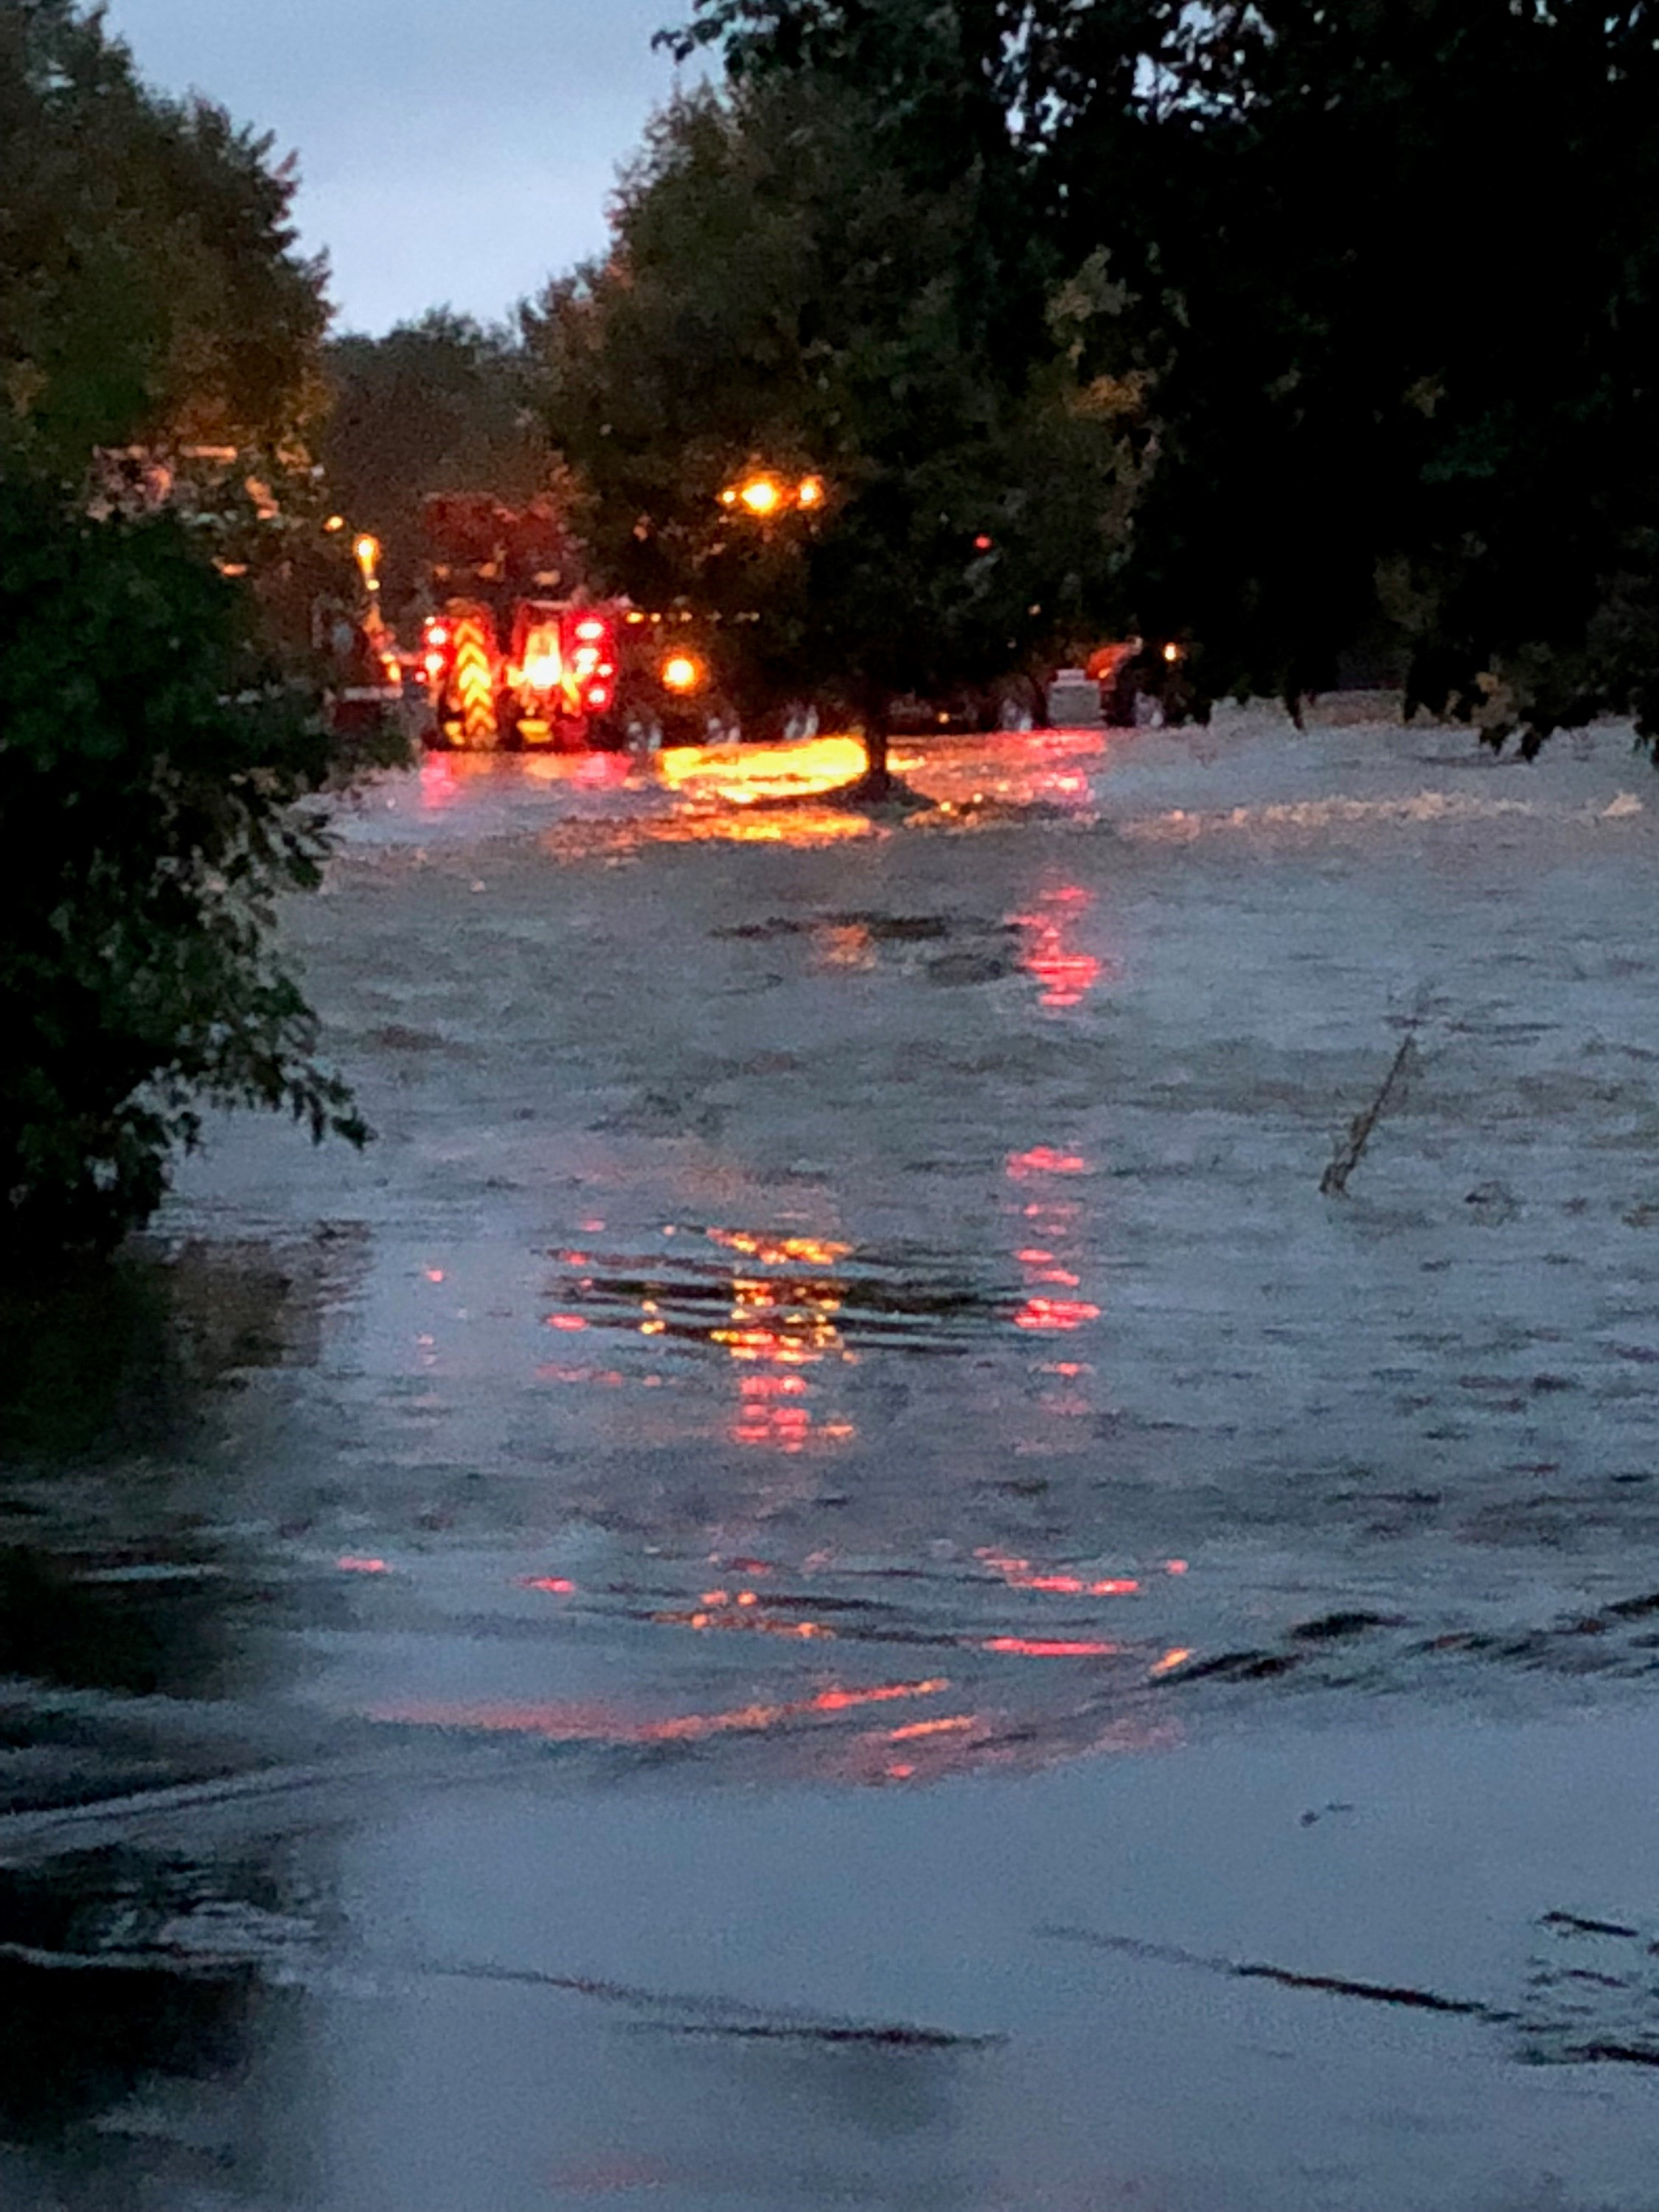 WDNR wardens were among numerous emergency response agencies at flooded and washed out roads that caught drivers by surprise in Madison and other western Dane County communities overnight August 20 as a record-setting rainfall pummeled the area.